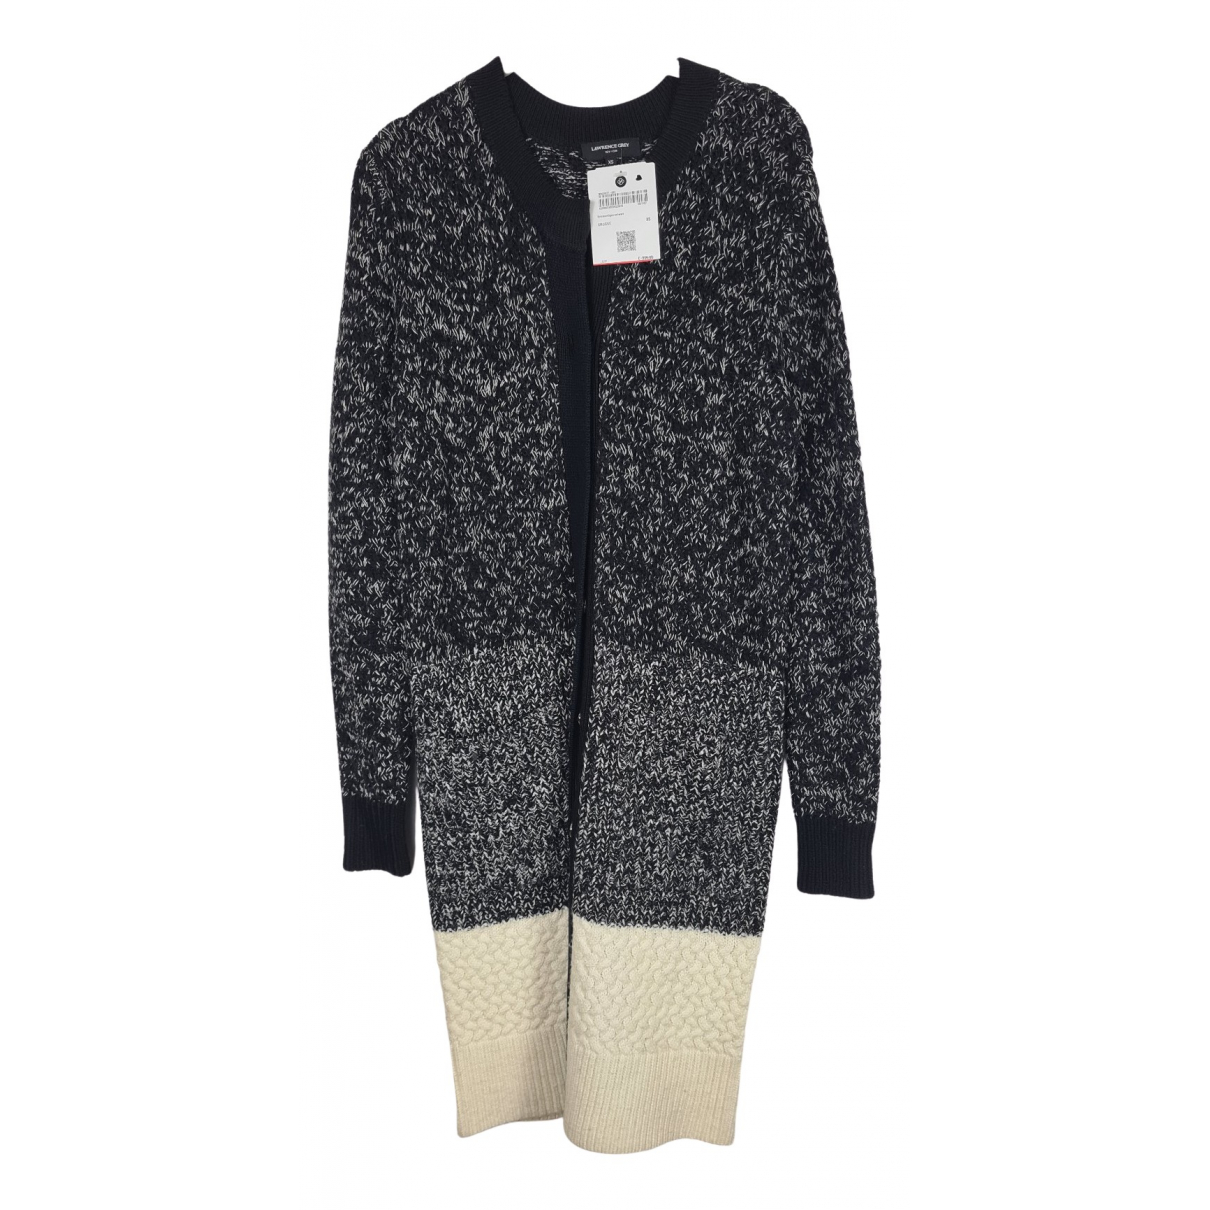 Lawrence Grey \N Pullover in  Schwarz Wolle